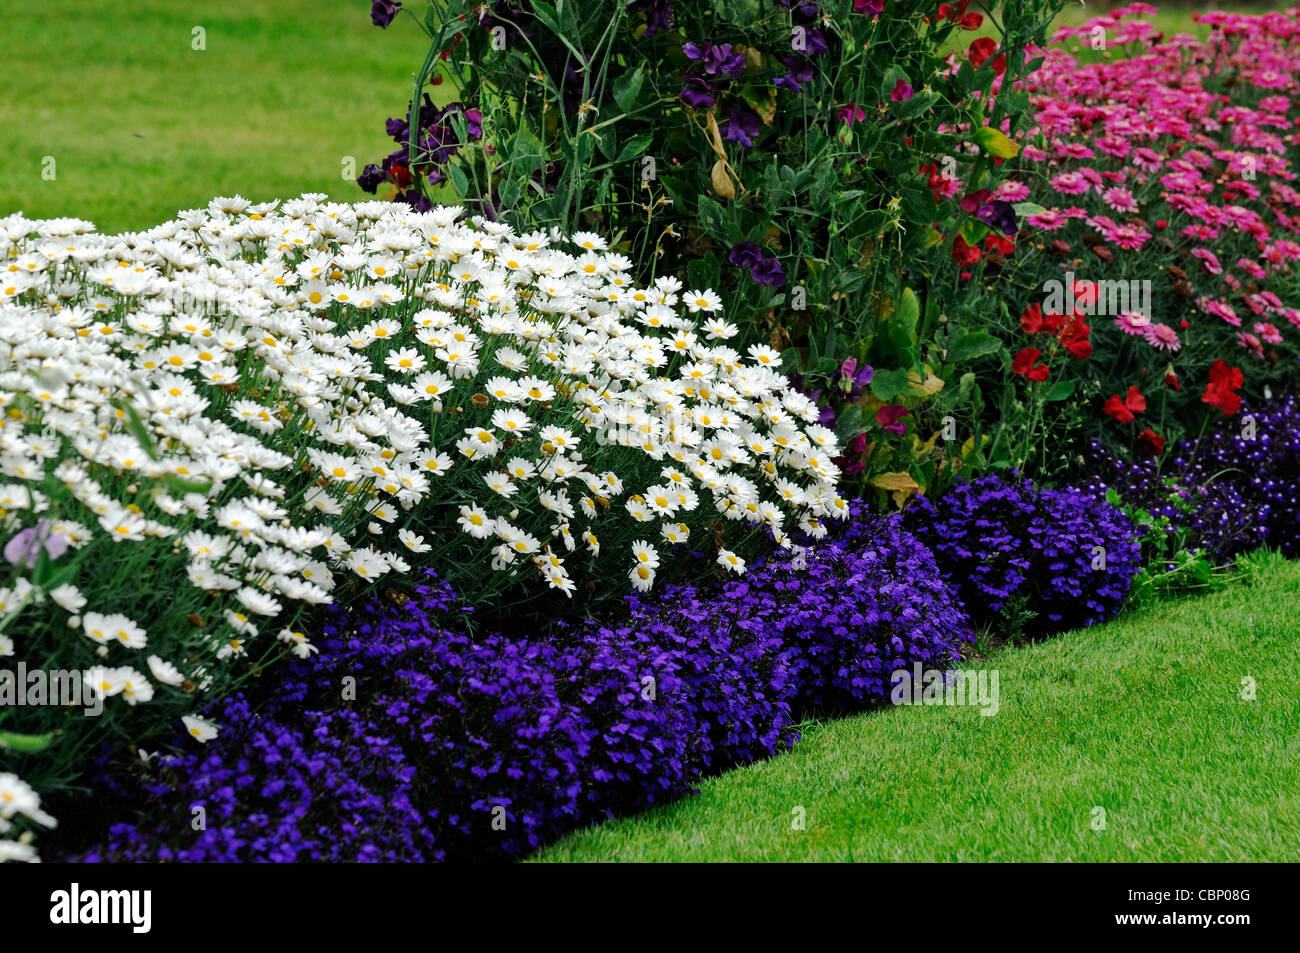 Perennials bed summer stock photos perennials bed summer stock summer flowering flowers herbaceous border bed flower plant planting mixed perennials colour color stock image mightylinksfo